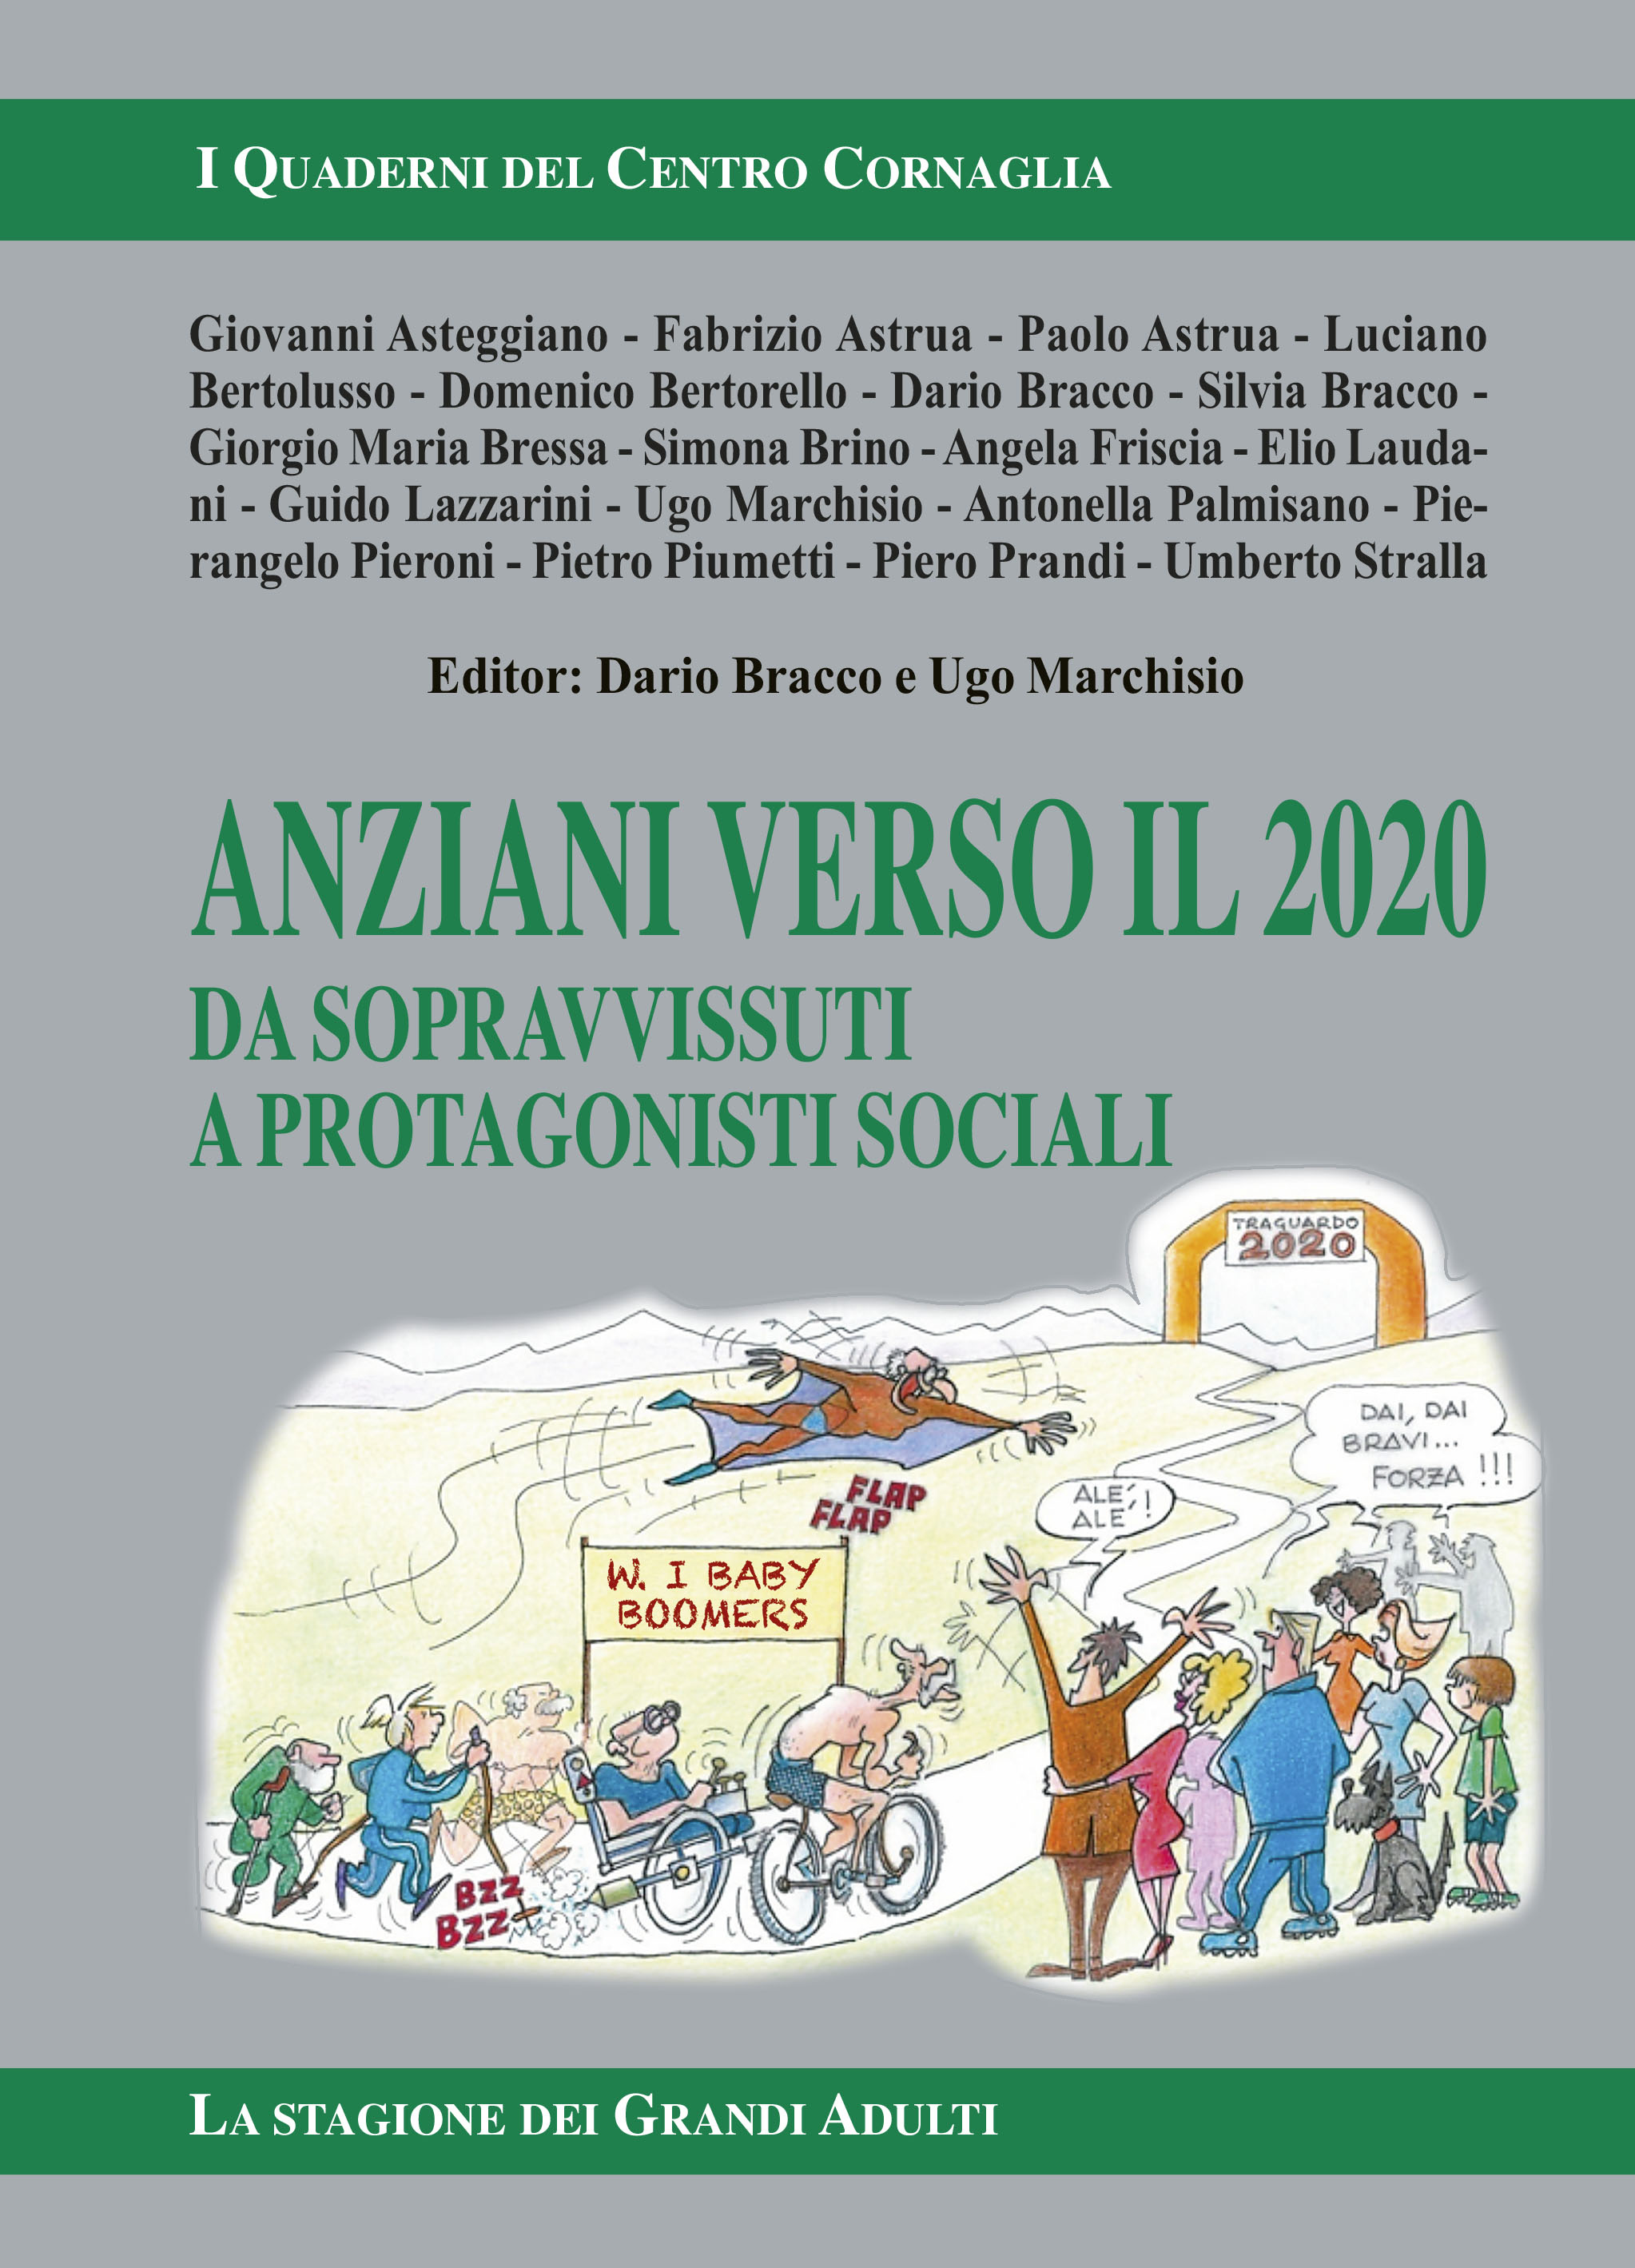 ELDERLY TOWARDS 2020, FROM SURVIVORS TO SOCIAL PROTAGONISTS